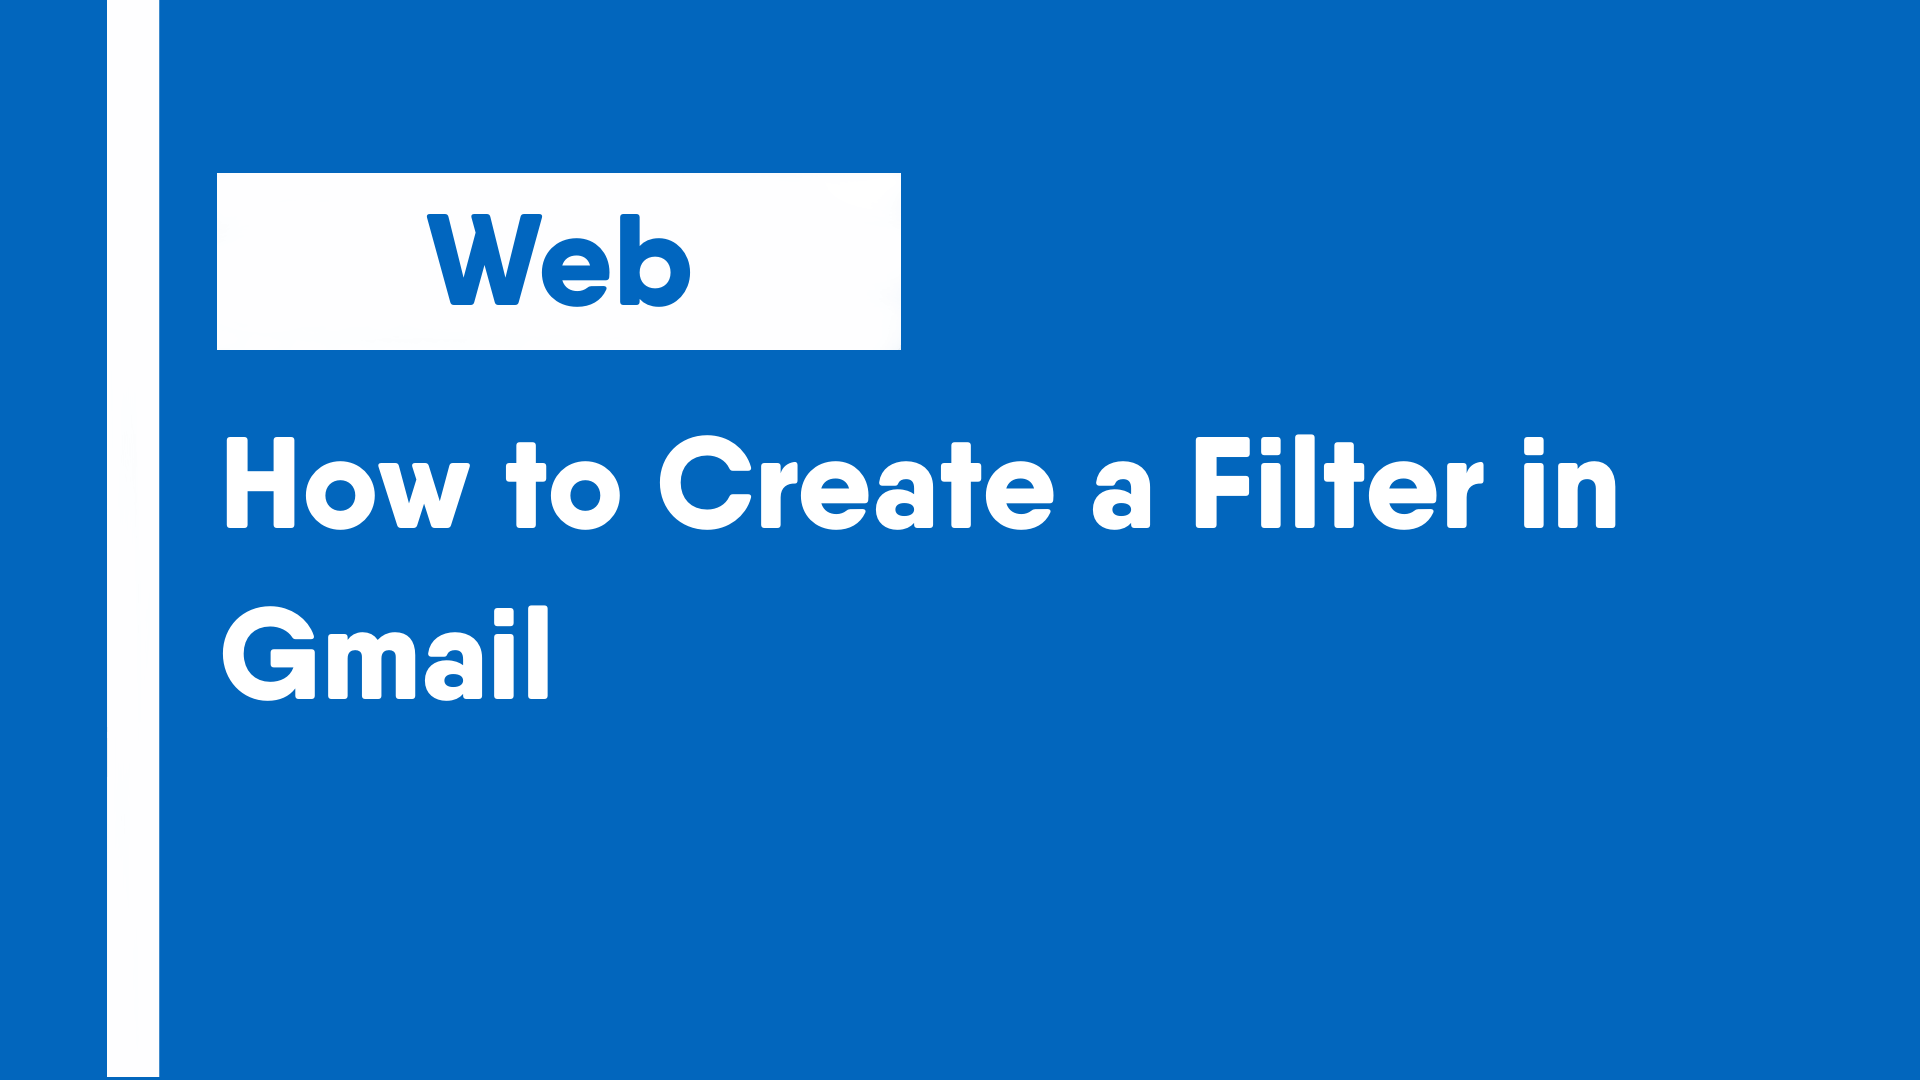 How to Create a Filter in Gmail